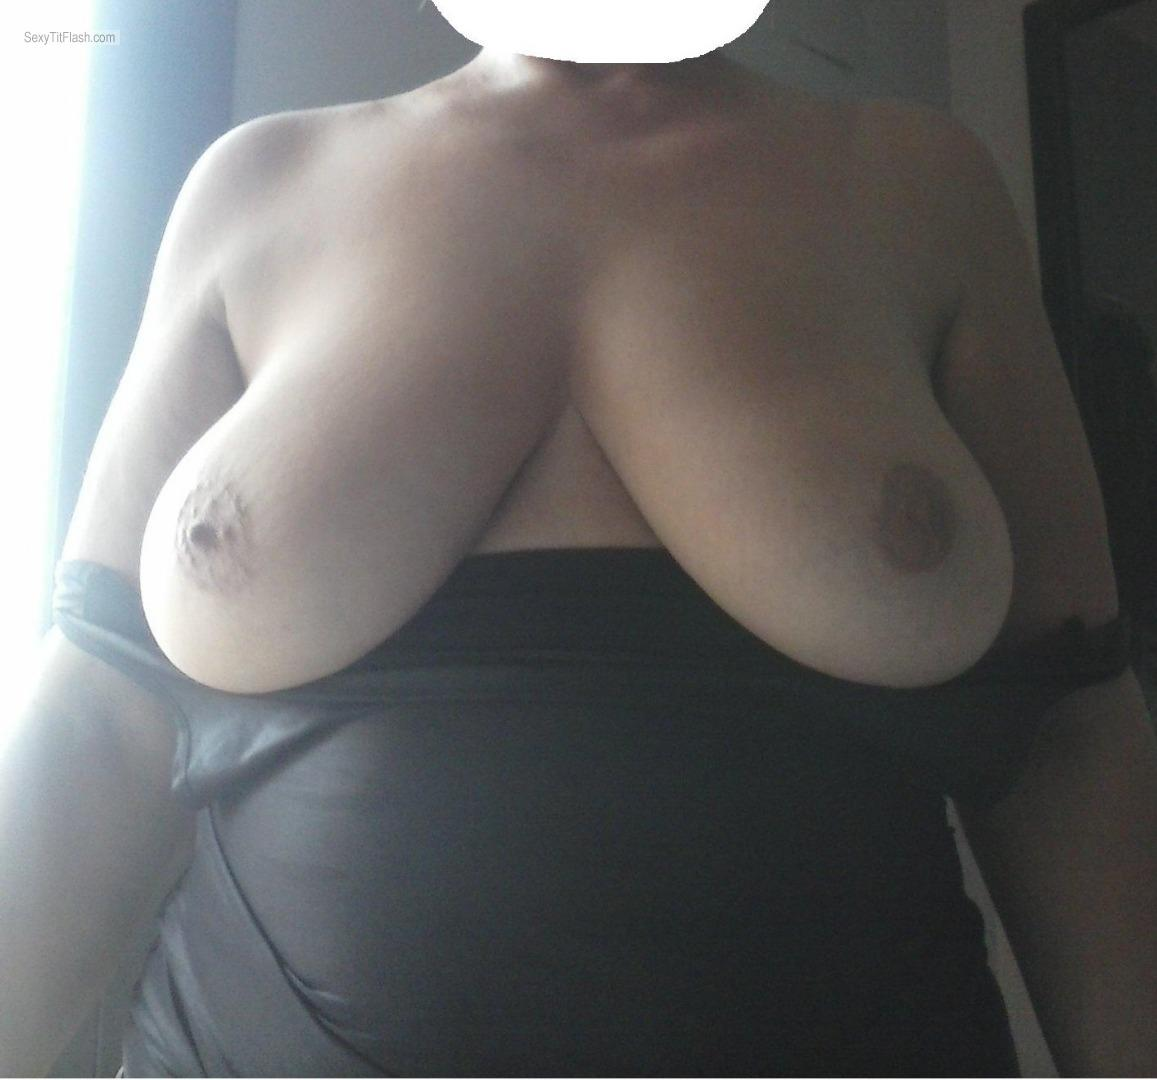 Tit Flash: Wife's Very Big Tits - Shiva from Spain